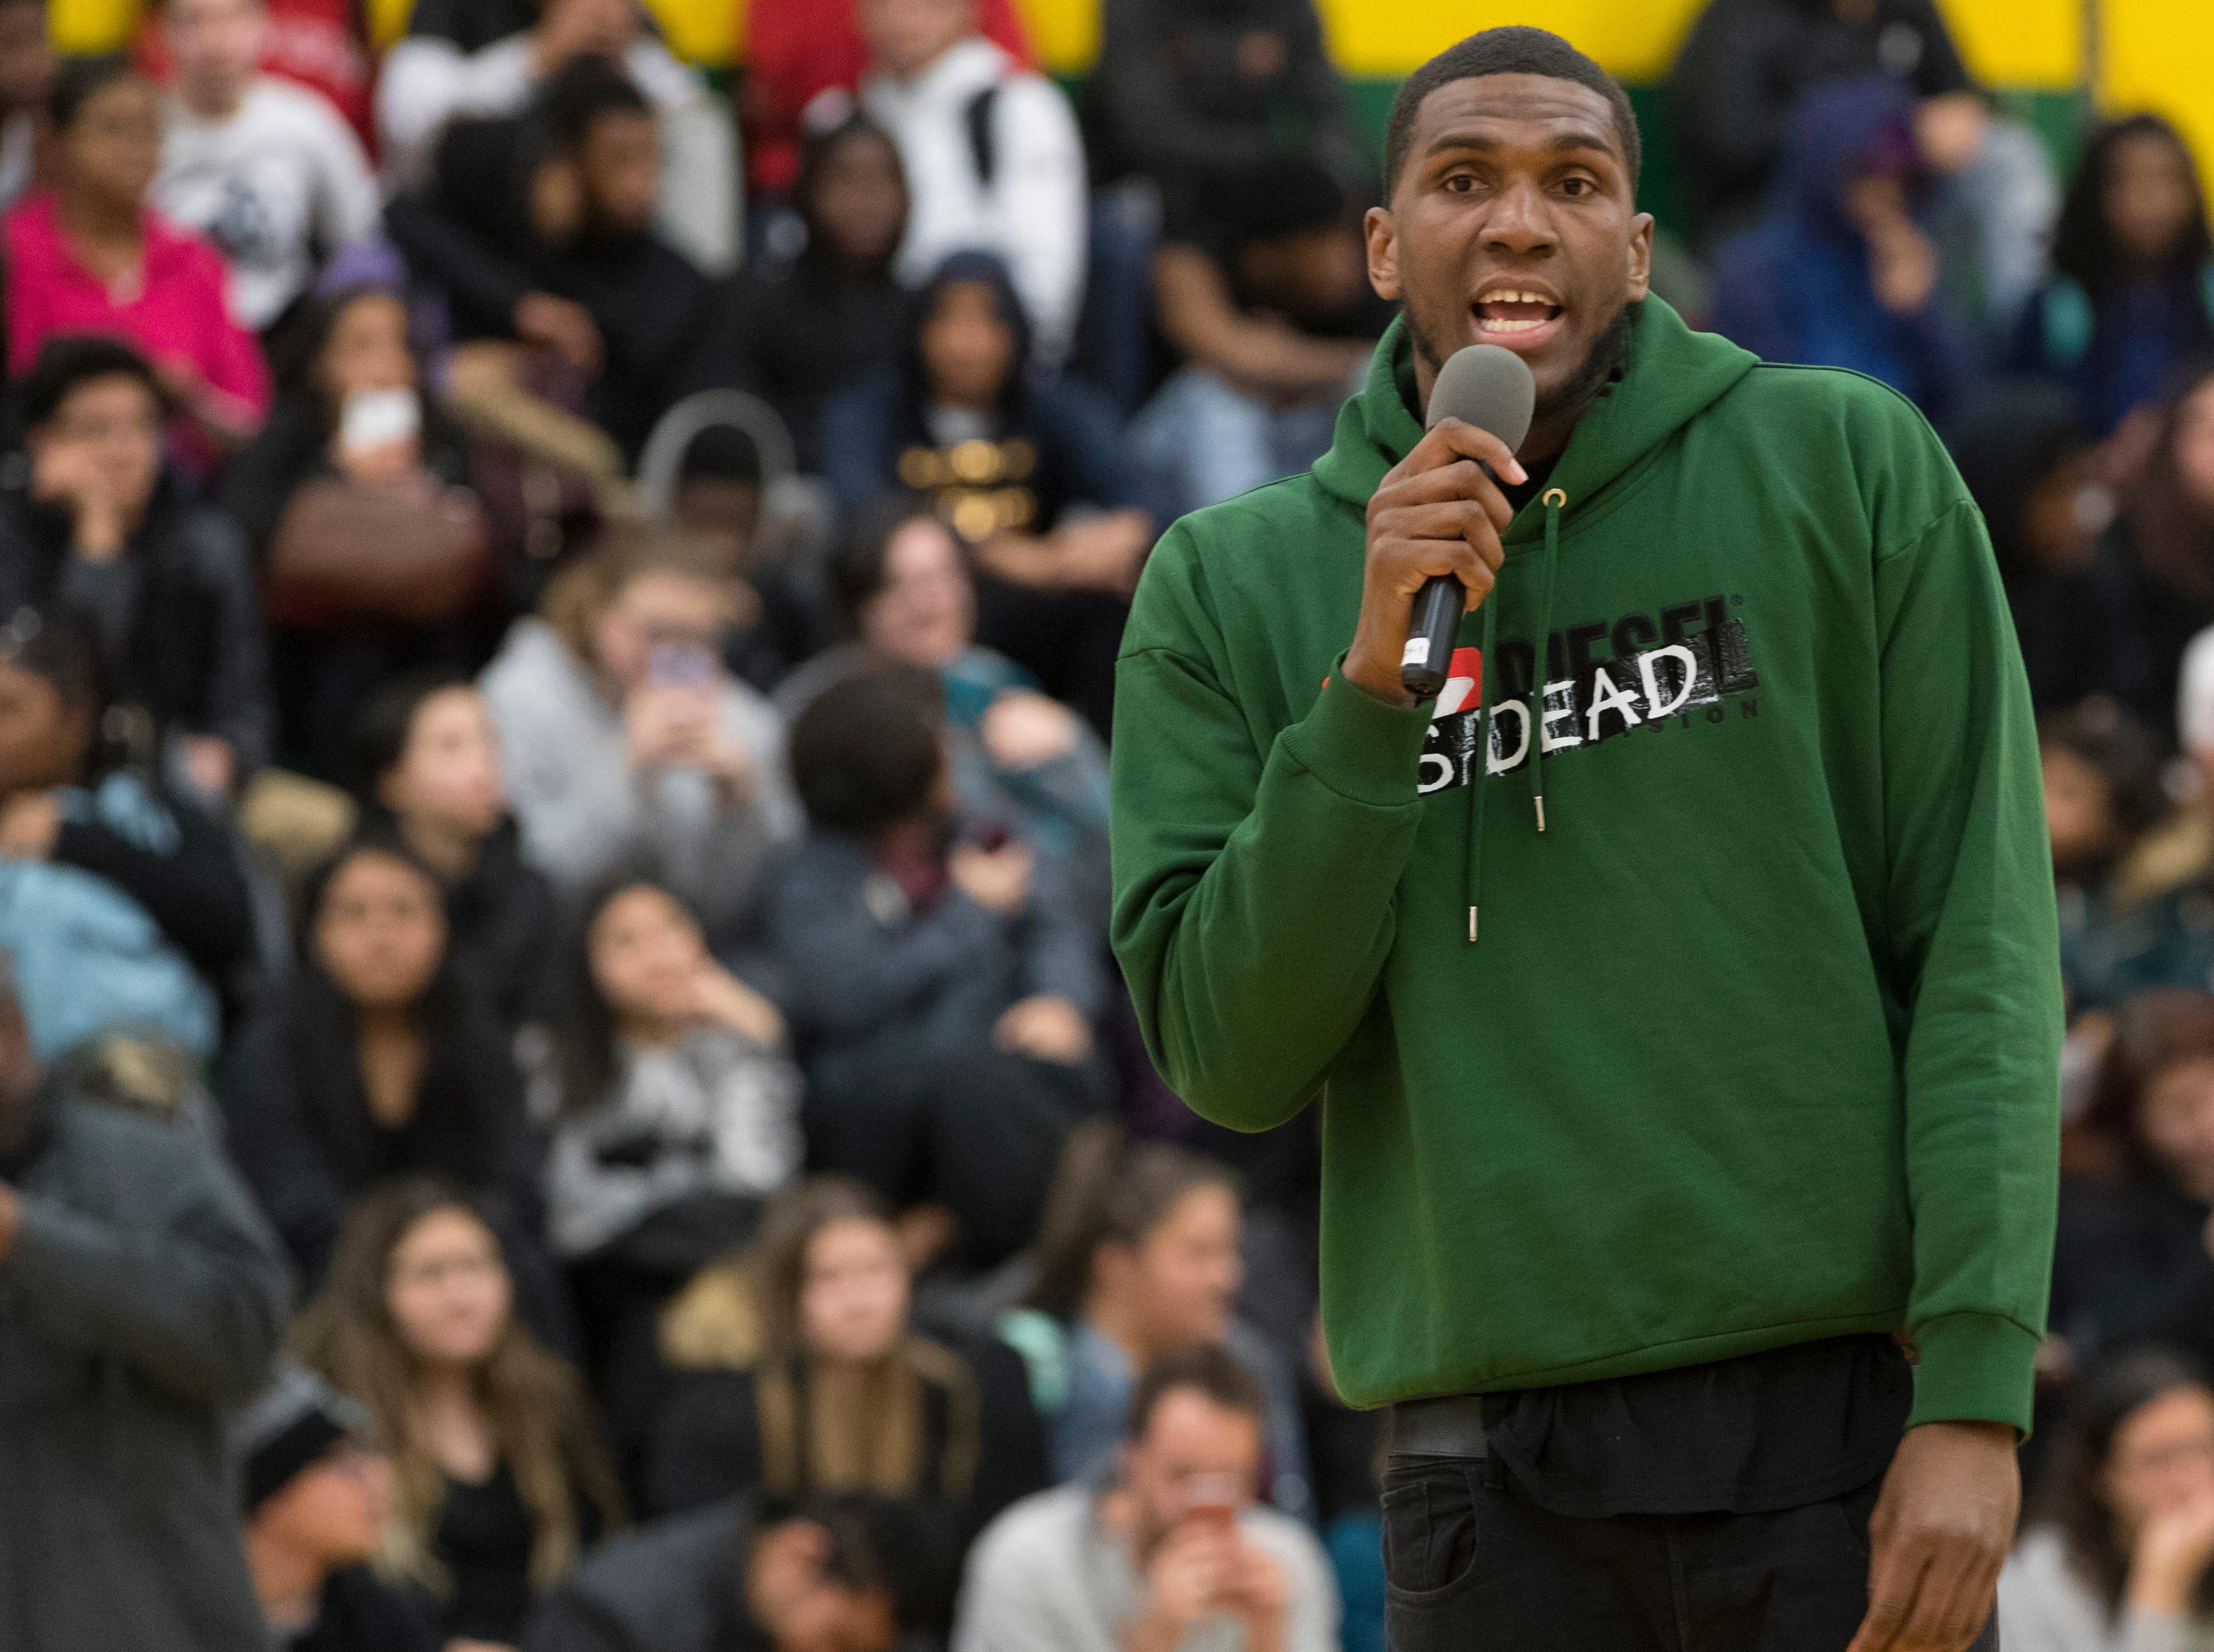 Golden State Warrior center Kevon Looney talks to students while taking part in a ceremony where his jersey is retired  Thursday, December 6, 2018 at Hamilton High School.